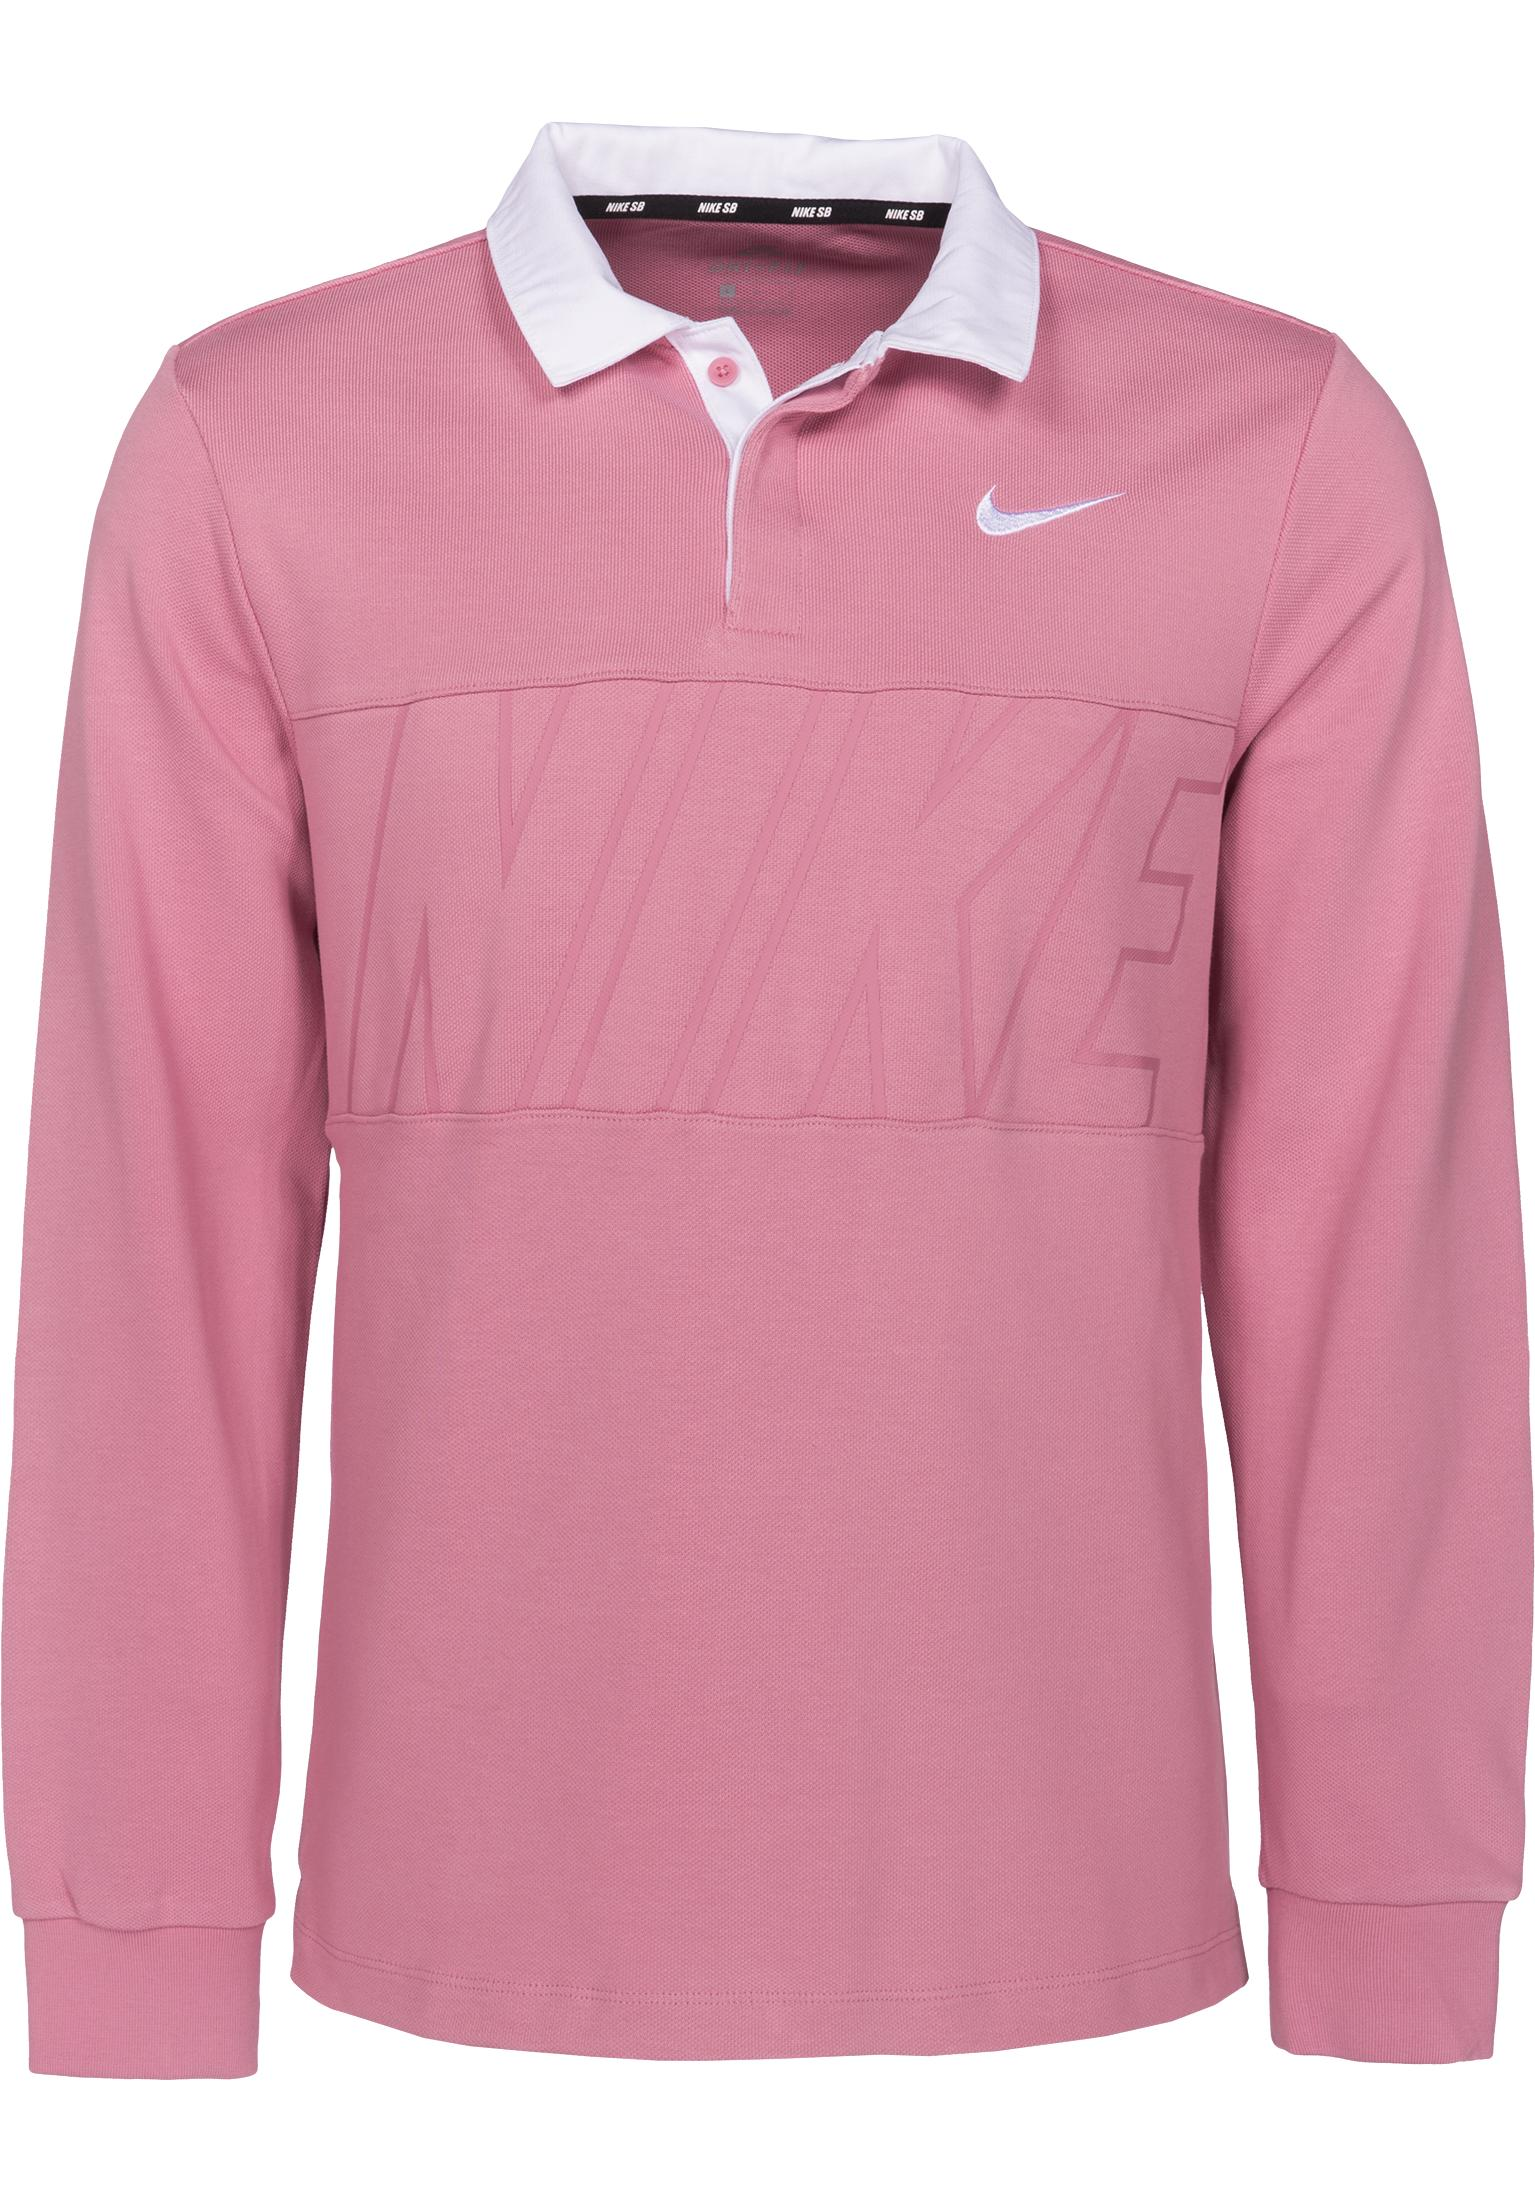 Dry Top Rugby Nike Sb Polo Shirts In Elementalpink White For Men Titus